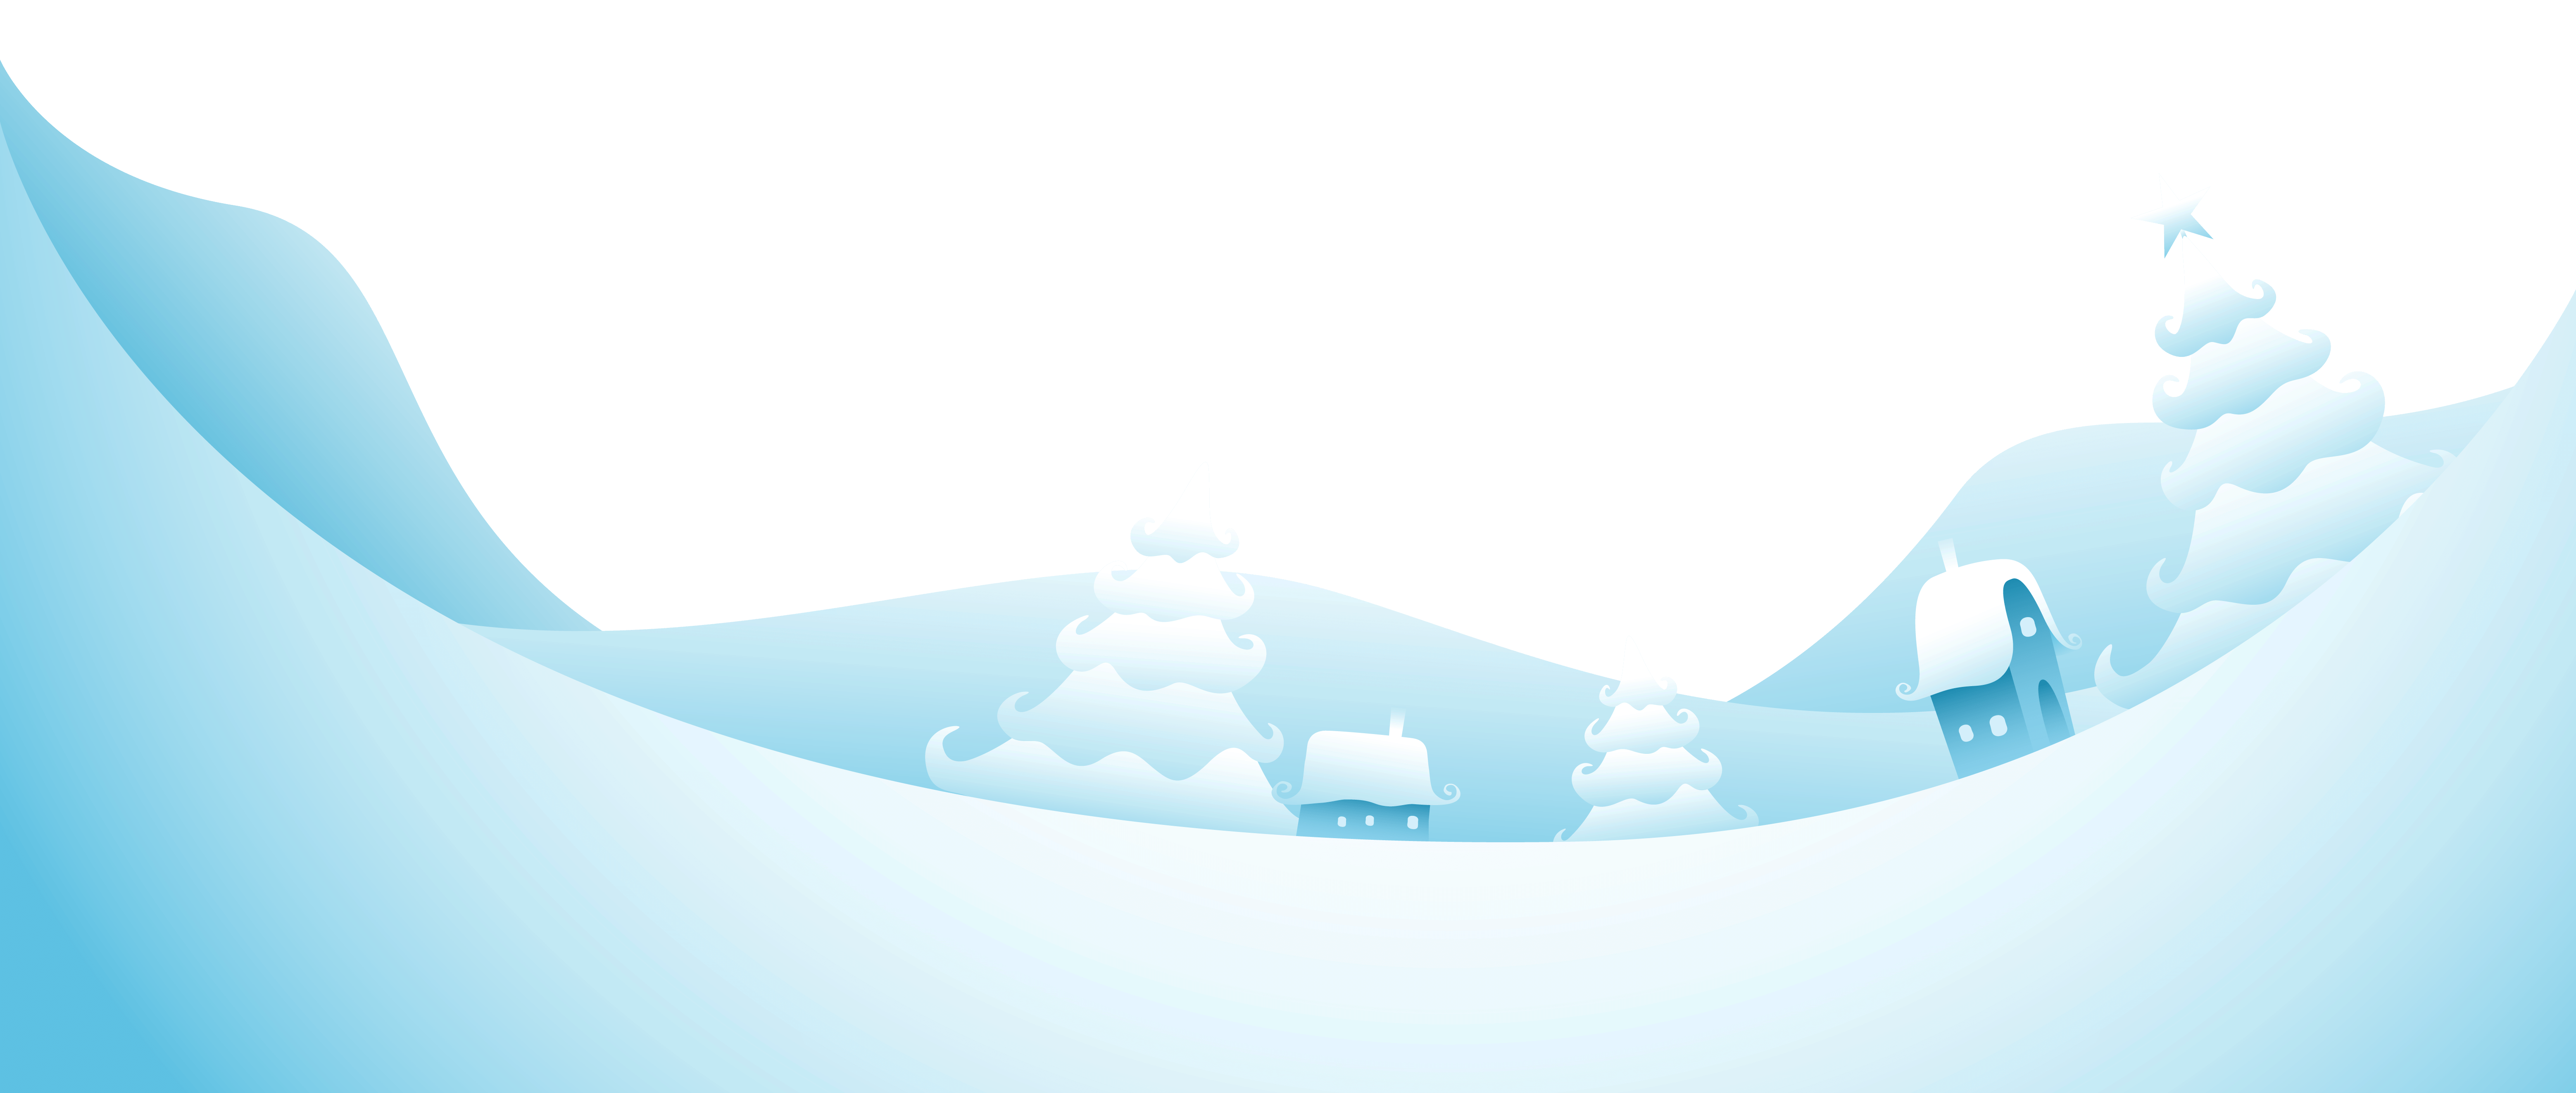 collection of ground. Floor clipart snowy